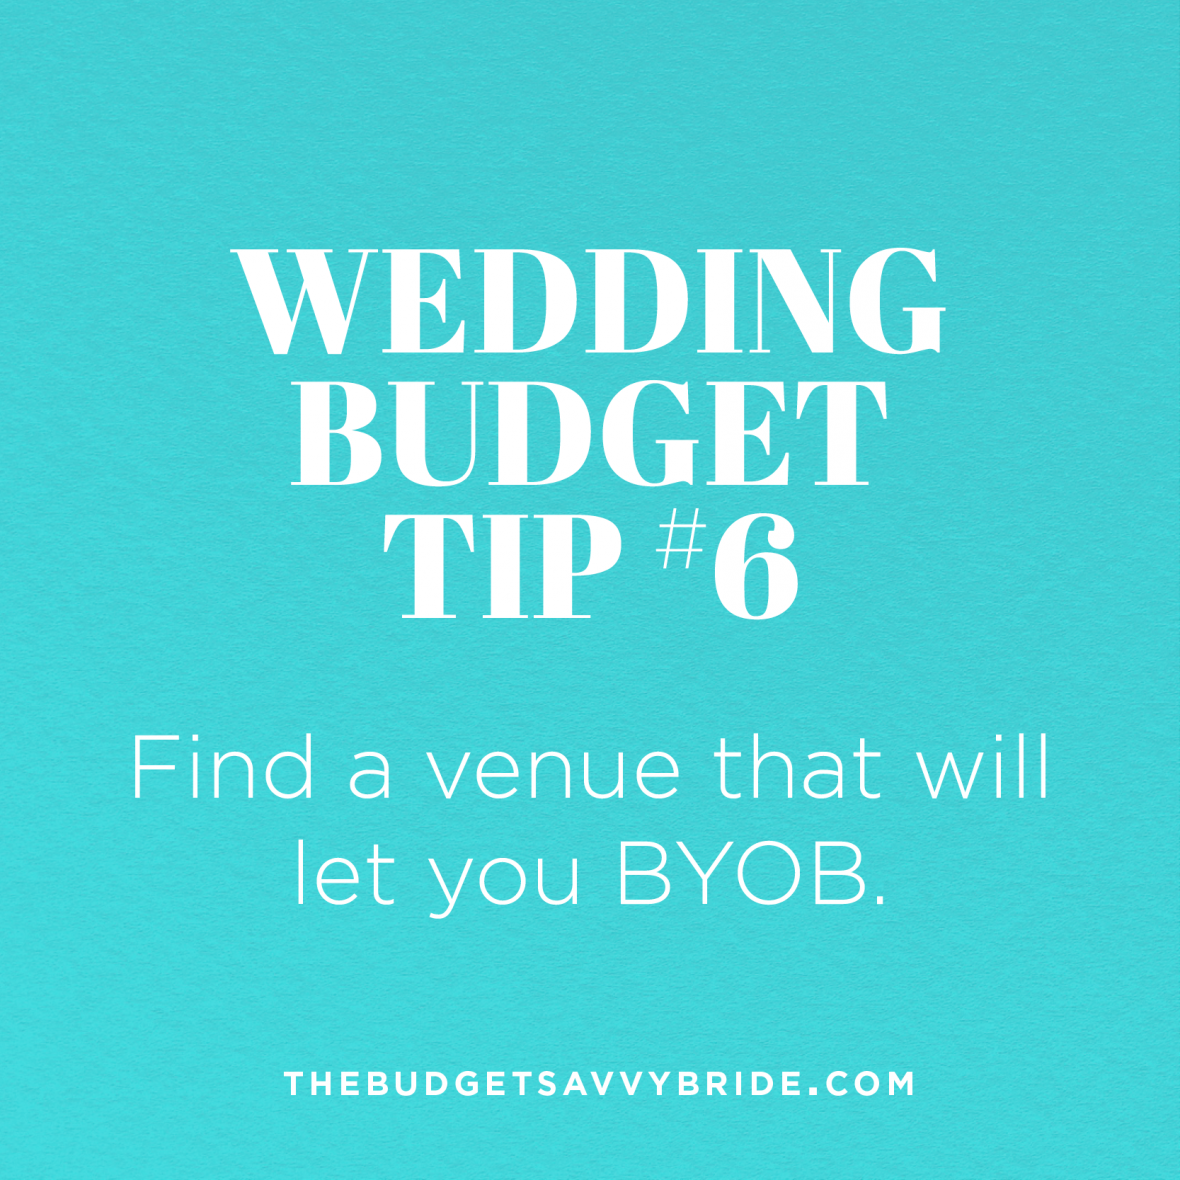 Bring your own booze for the wedding reception to save BIG money